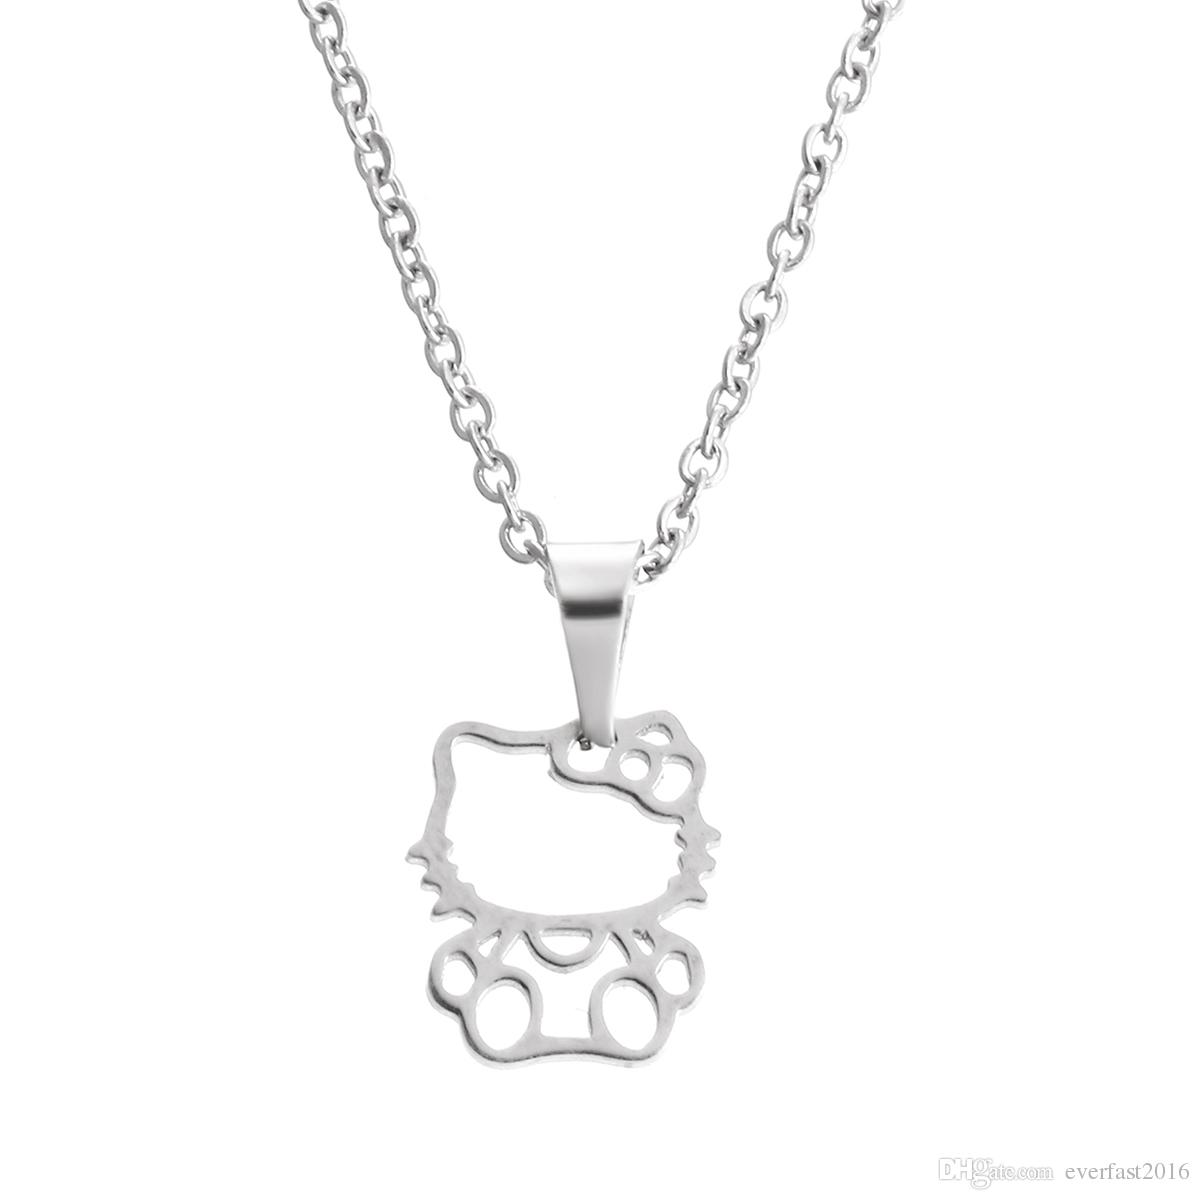 Wholesale everfast fashion new stainless steel necklacecute hollow wholesale everfast fashion new stainless steel necklacecute hollow out hello kitty pendant kids girls chokers statement necklace lucky gift sn011 heart aloadofball Image collections